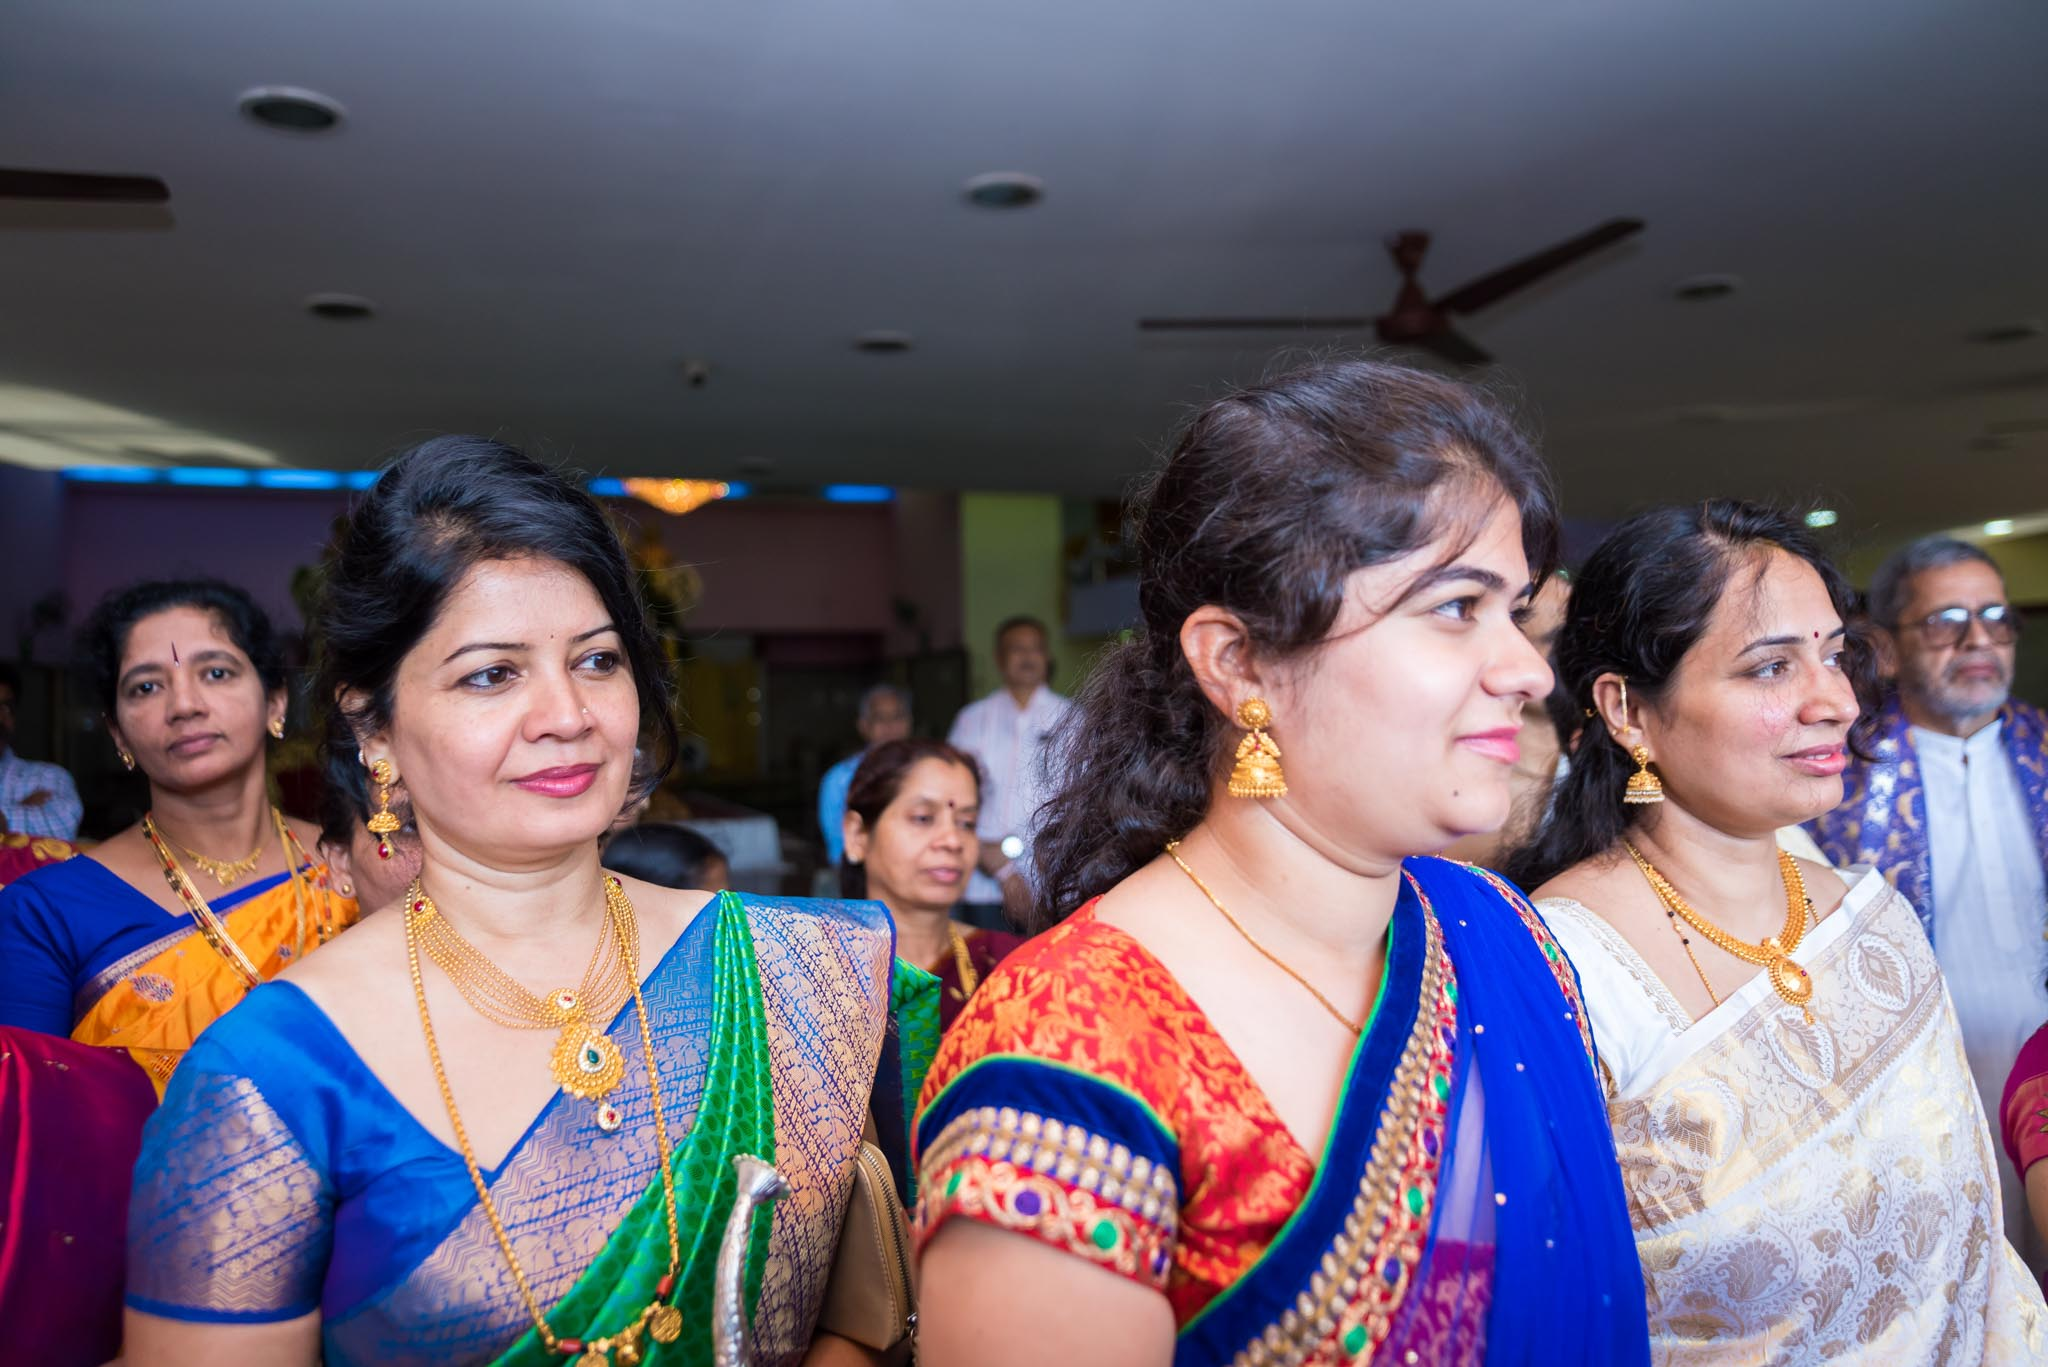 WhatKnot-Candid-Wedding-Photography-Mumbai-Bangalore-136